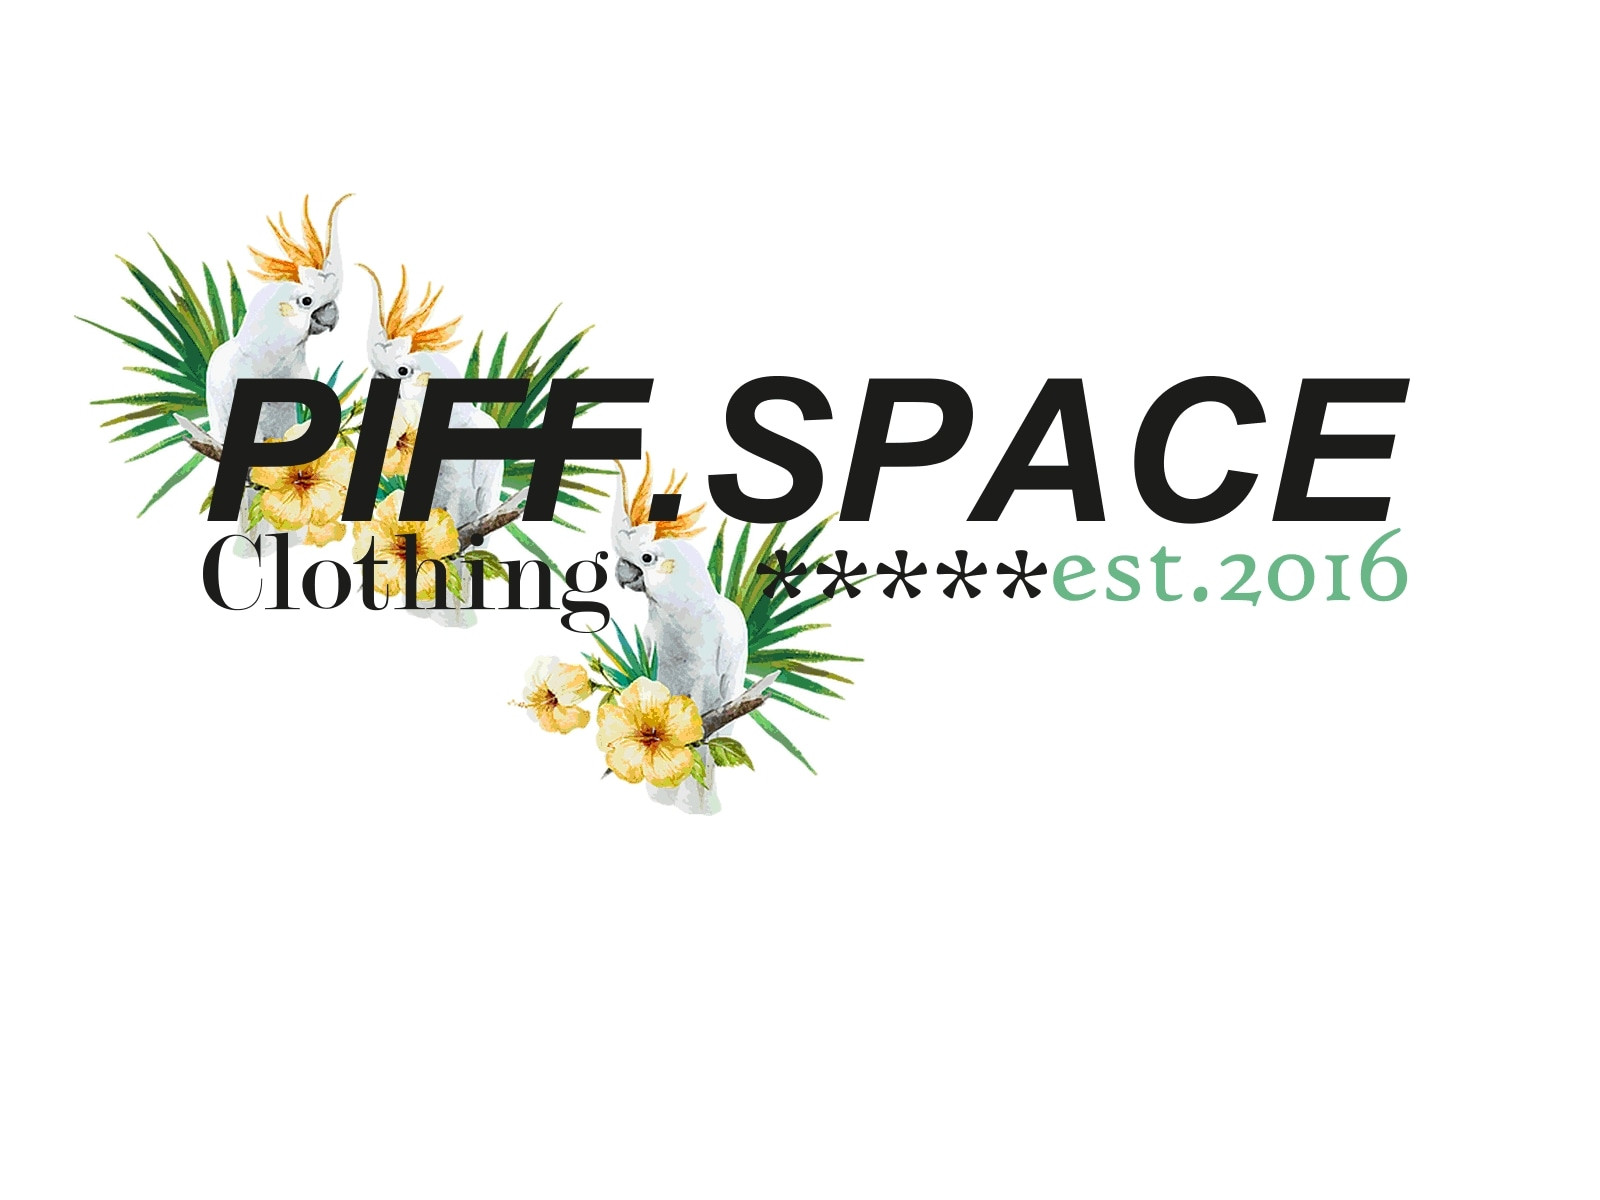 PI-FF-Space Clothing promo codes